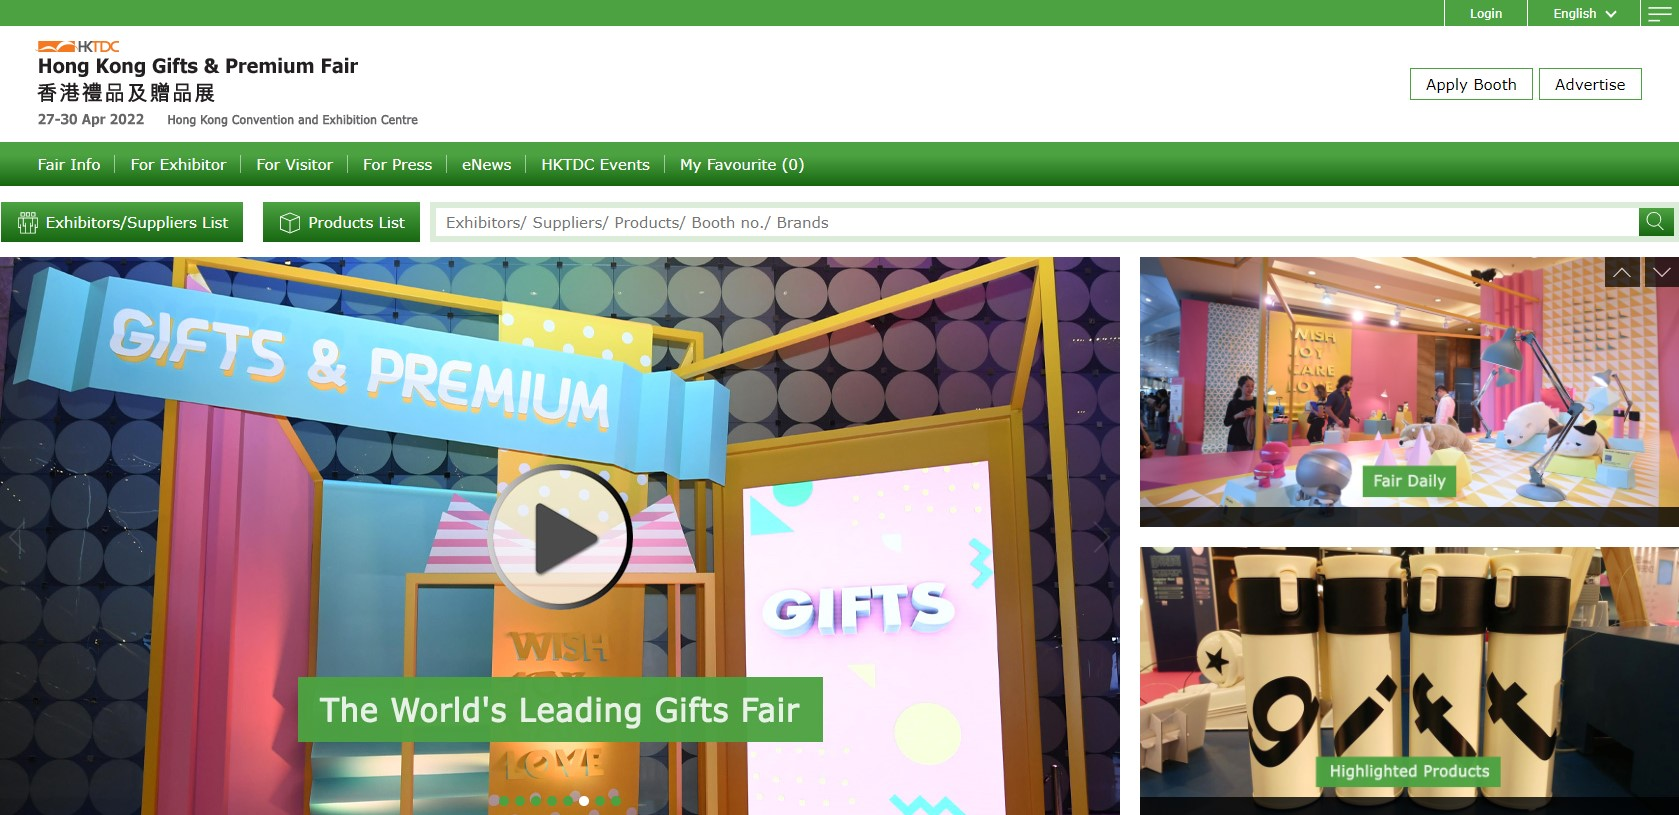 news-Lexuma-Agent-Product-Travel-Scratch-Maps-listed-on-the-Sourcing-on-hktdc-com-event-page-Hong-Kong-Gifts-and-Premium-Fair-exhibition-eng